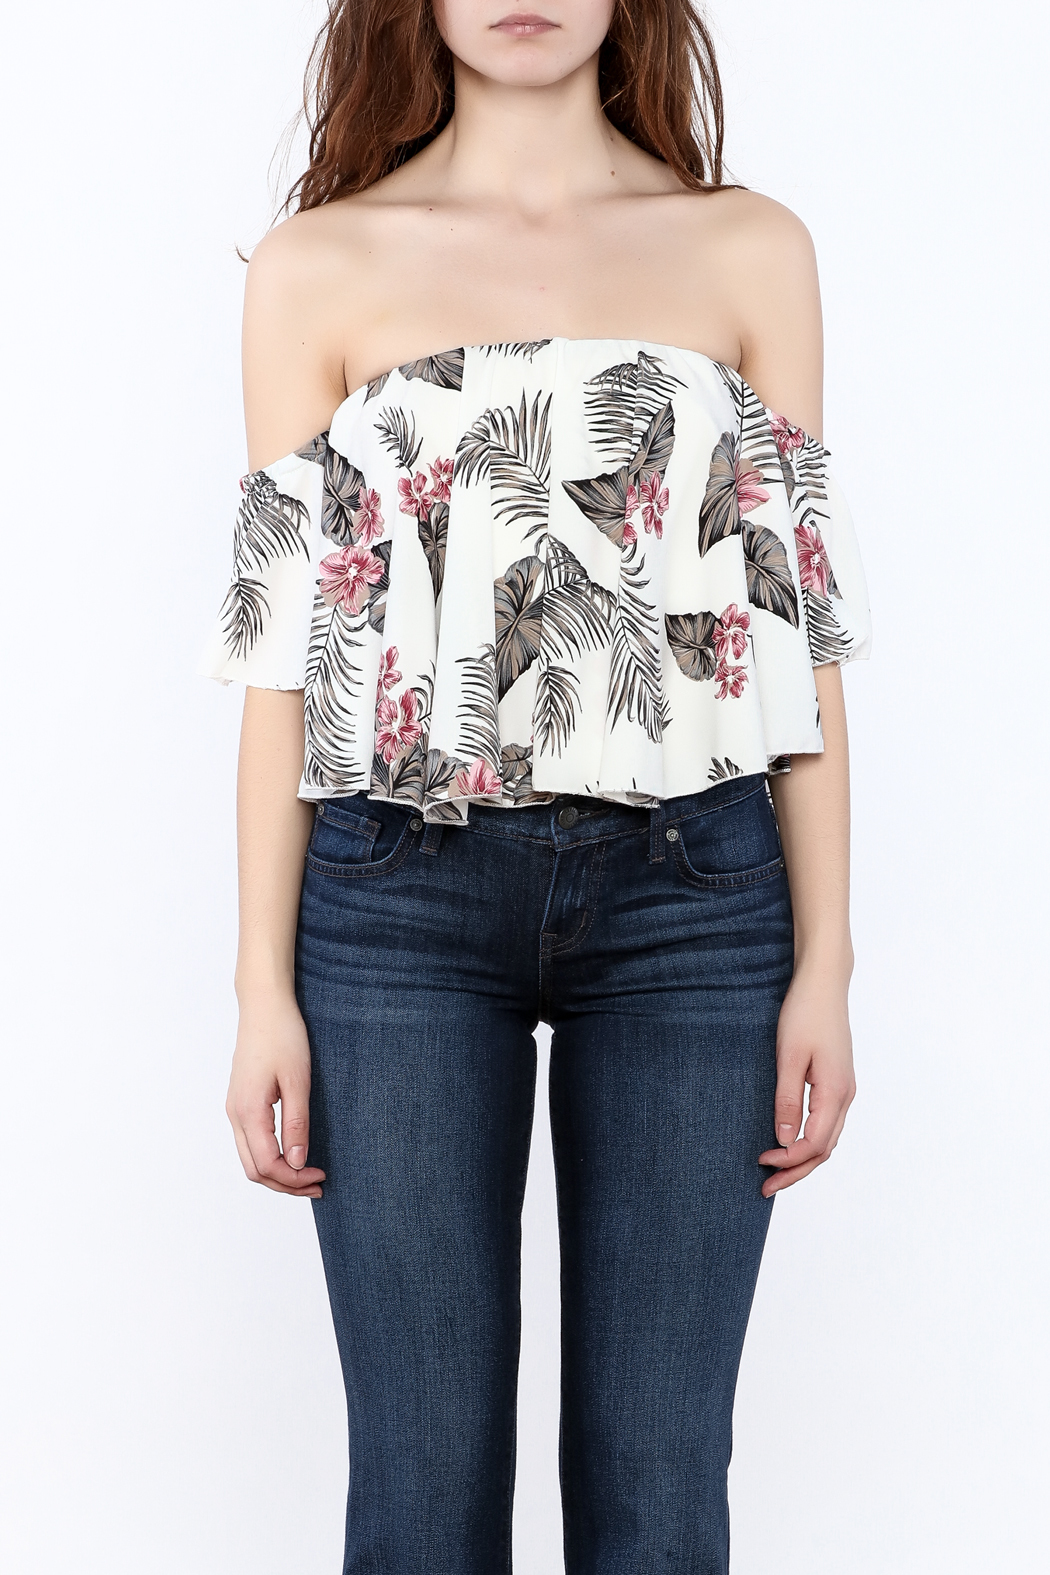 Jella Couture Leaf Print Crop Top - Side Cropped Image